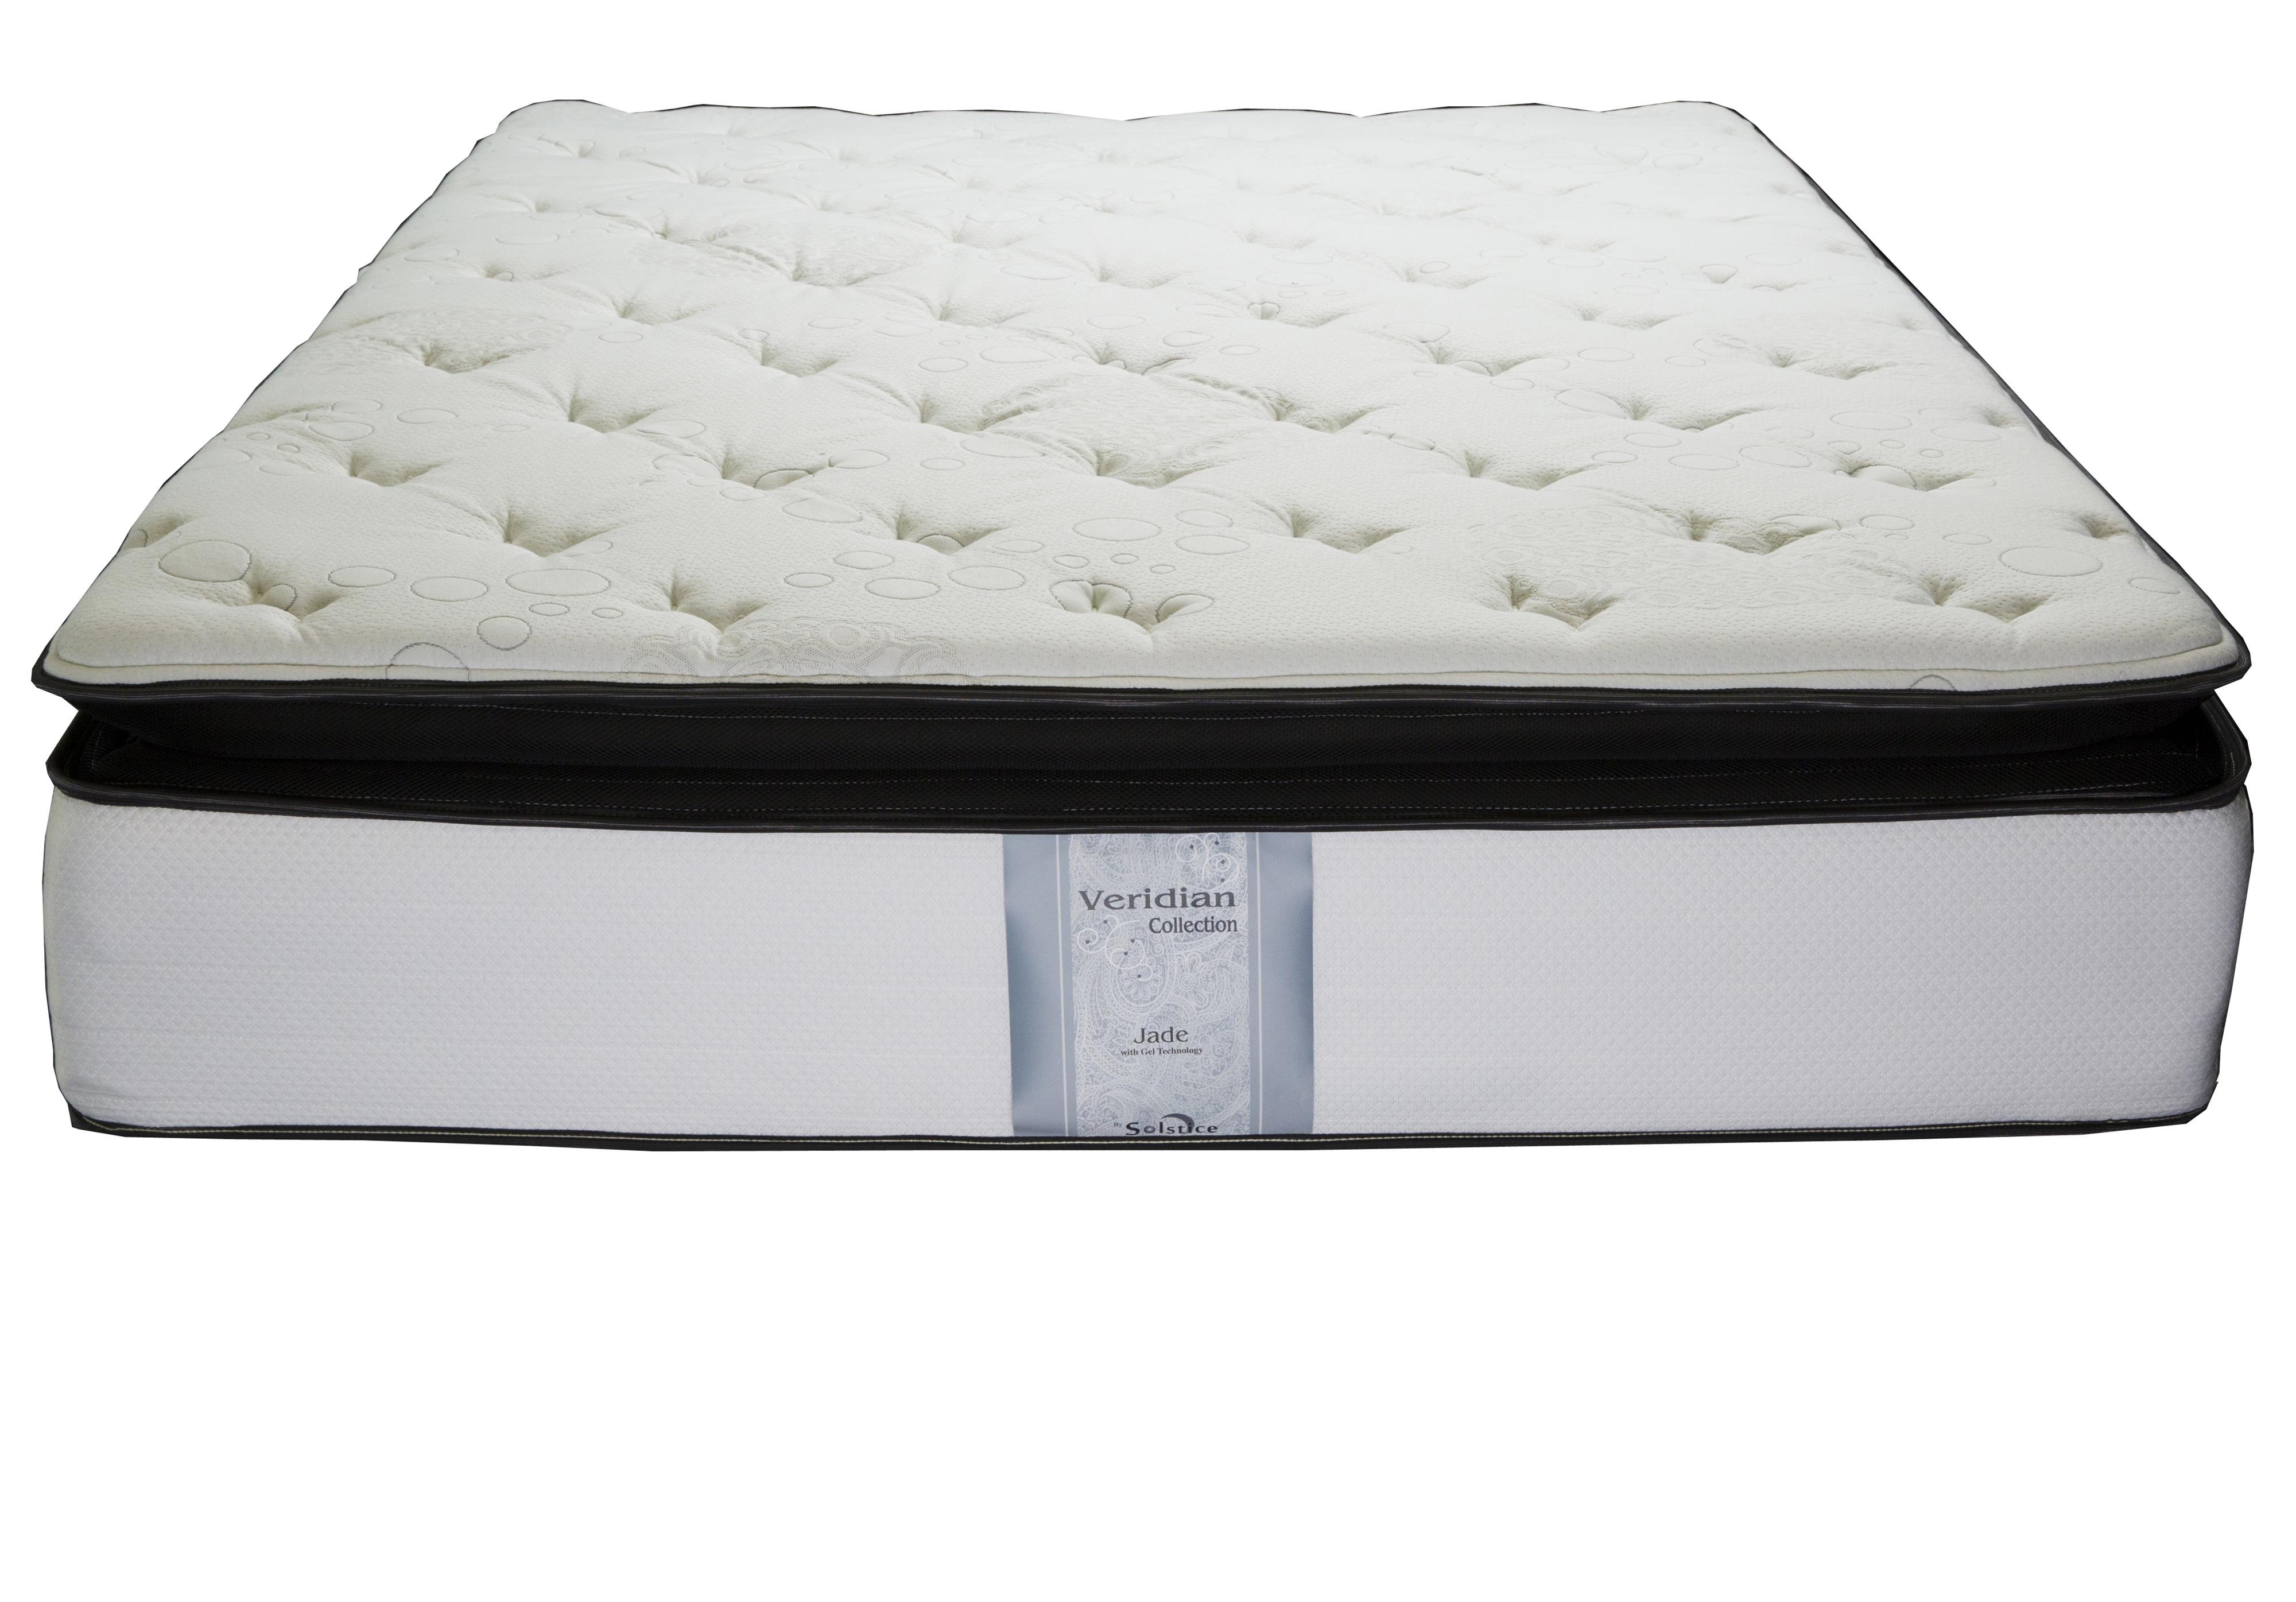 Veridian Jade Twin Pillow Top Mattress by Solstice Sleep Products at Virginia Furniture Market